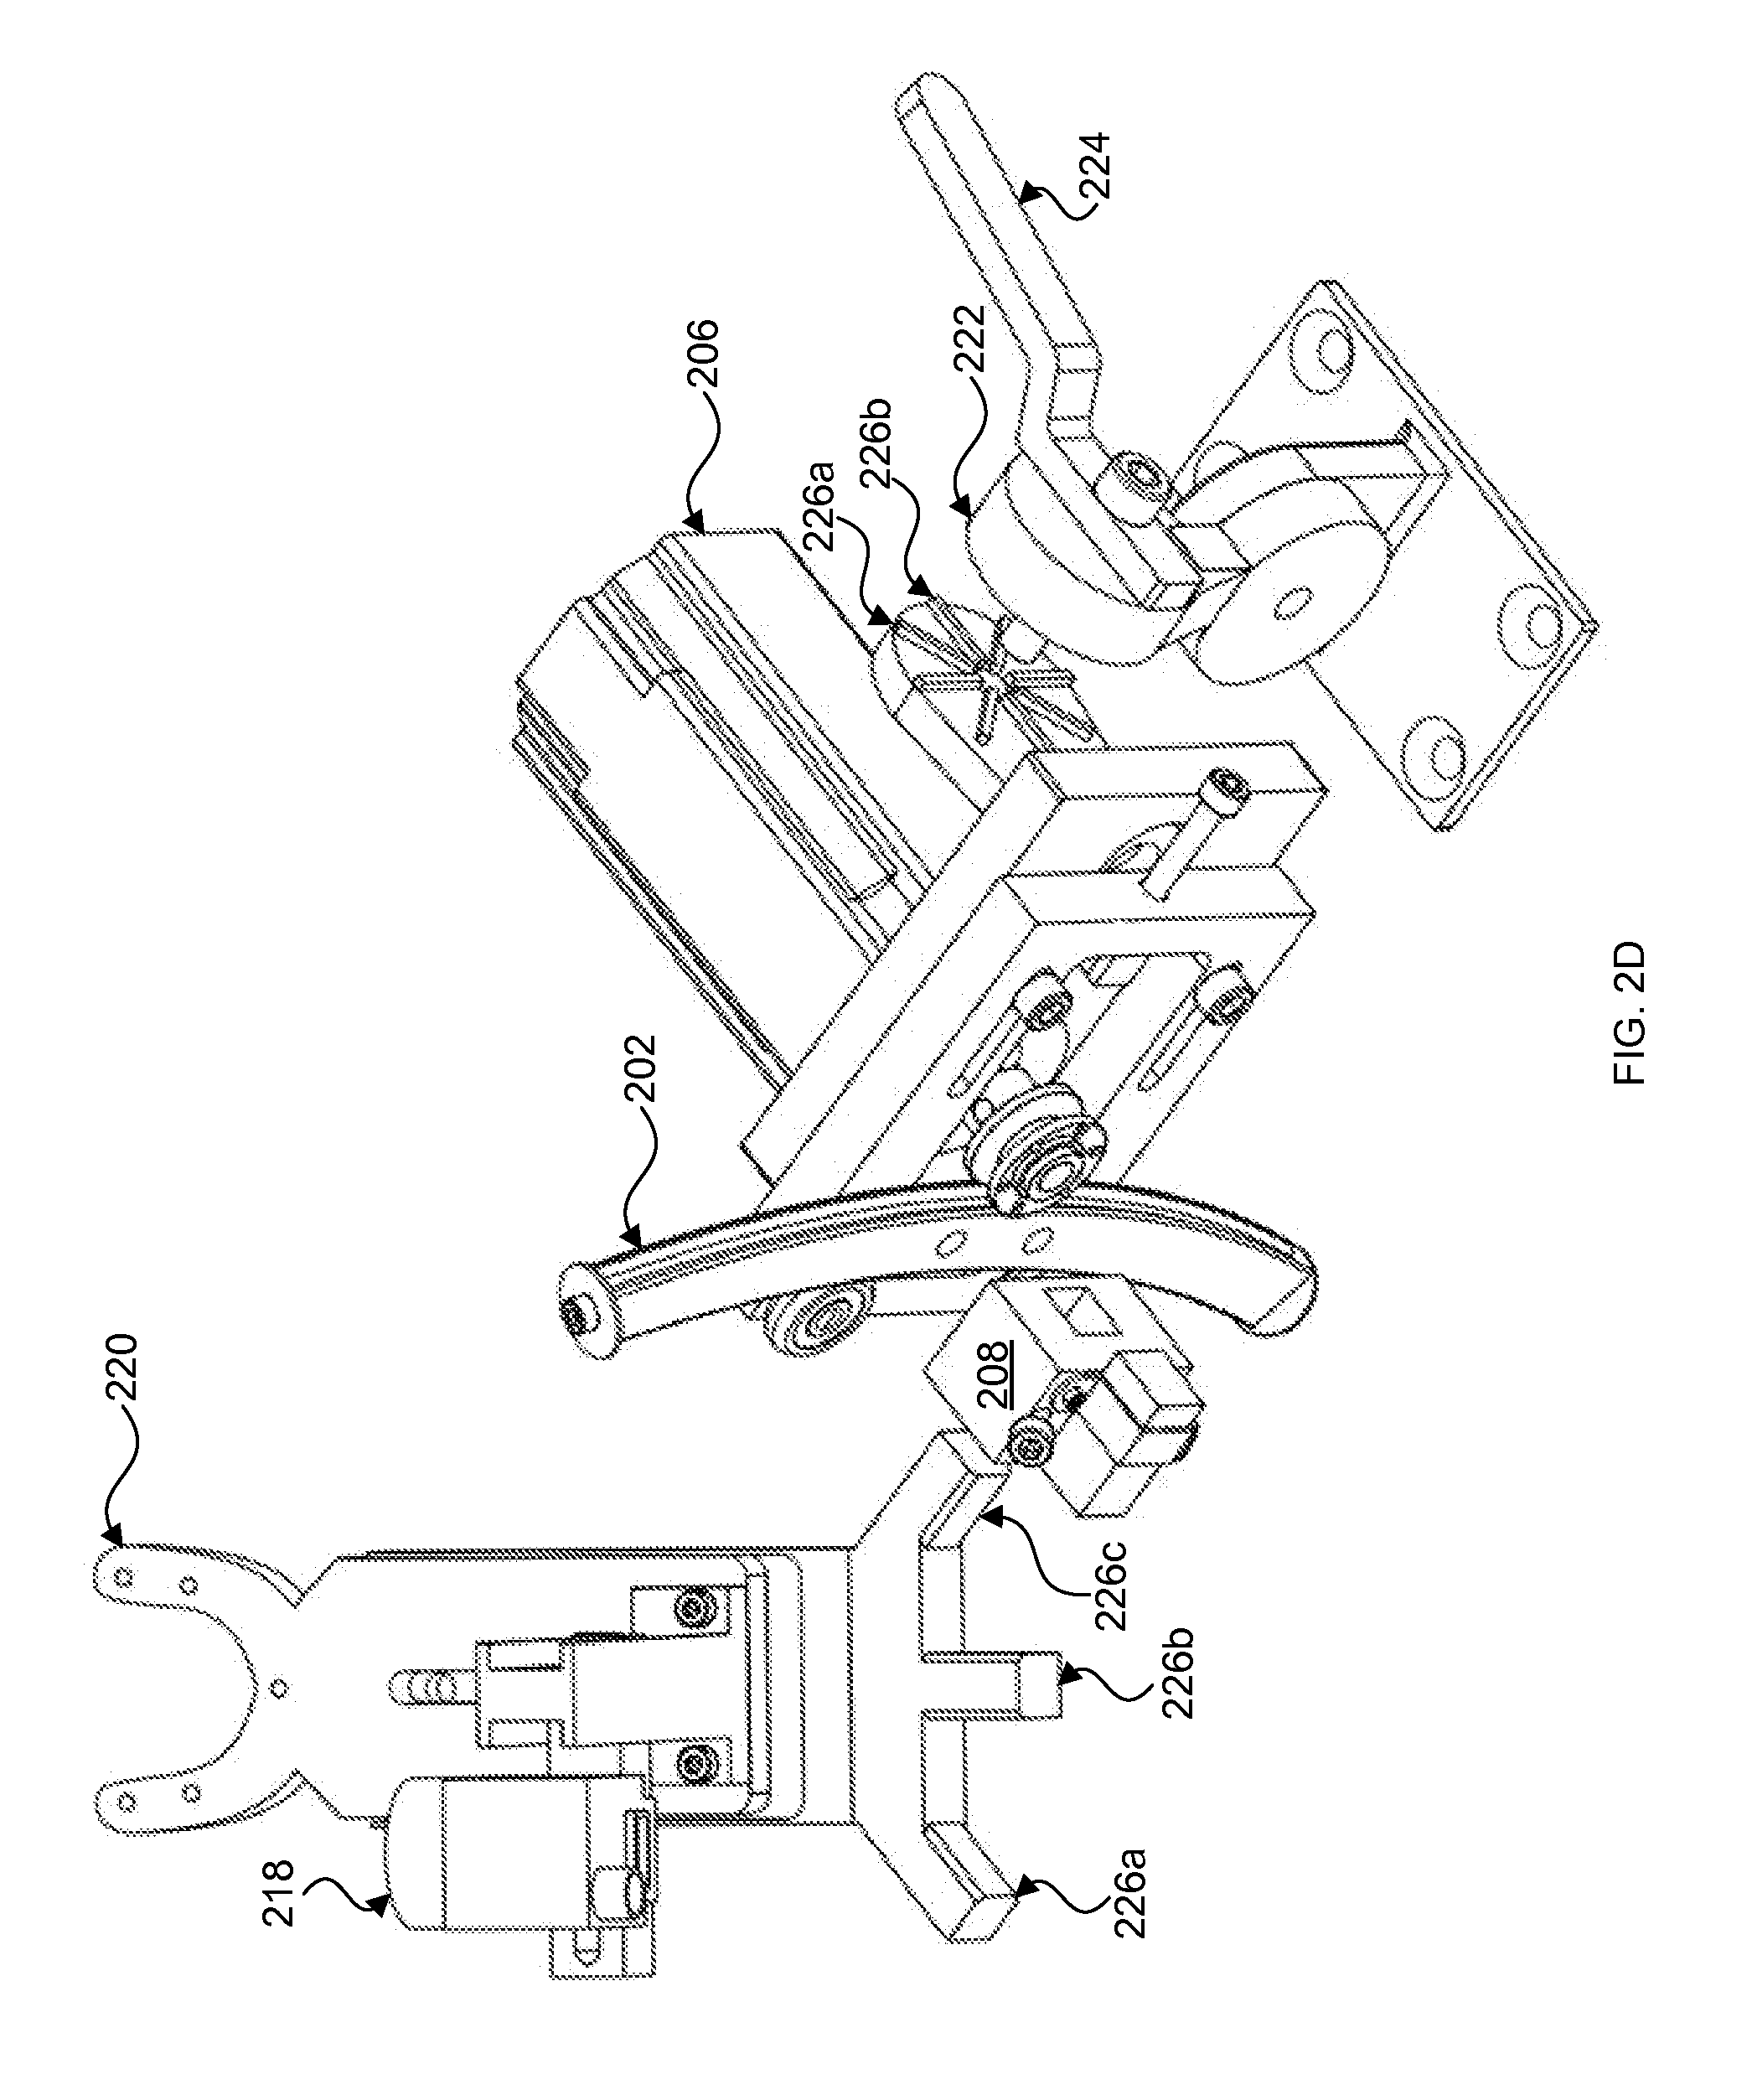 Patent Us20110152711 Systems And Methods For Testing Vestibular 1995 Kawasaki Mule Wiring Diagram Drawing